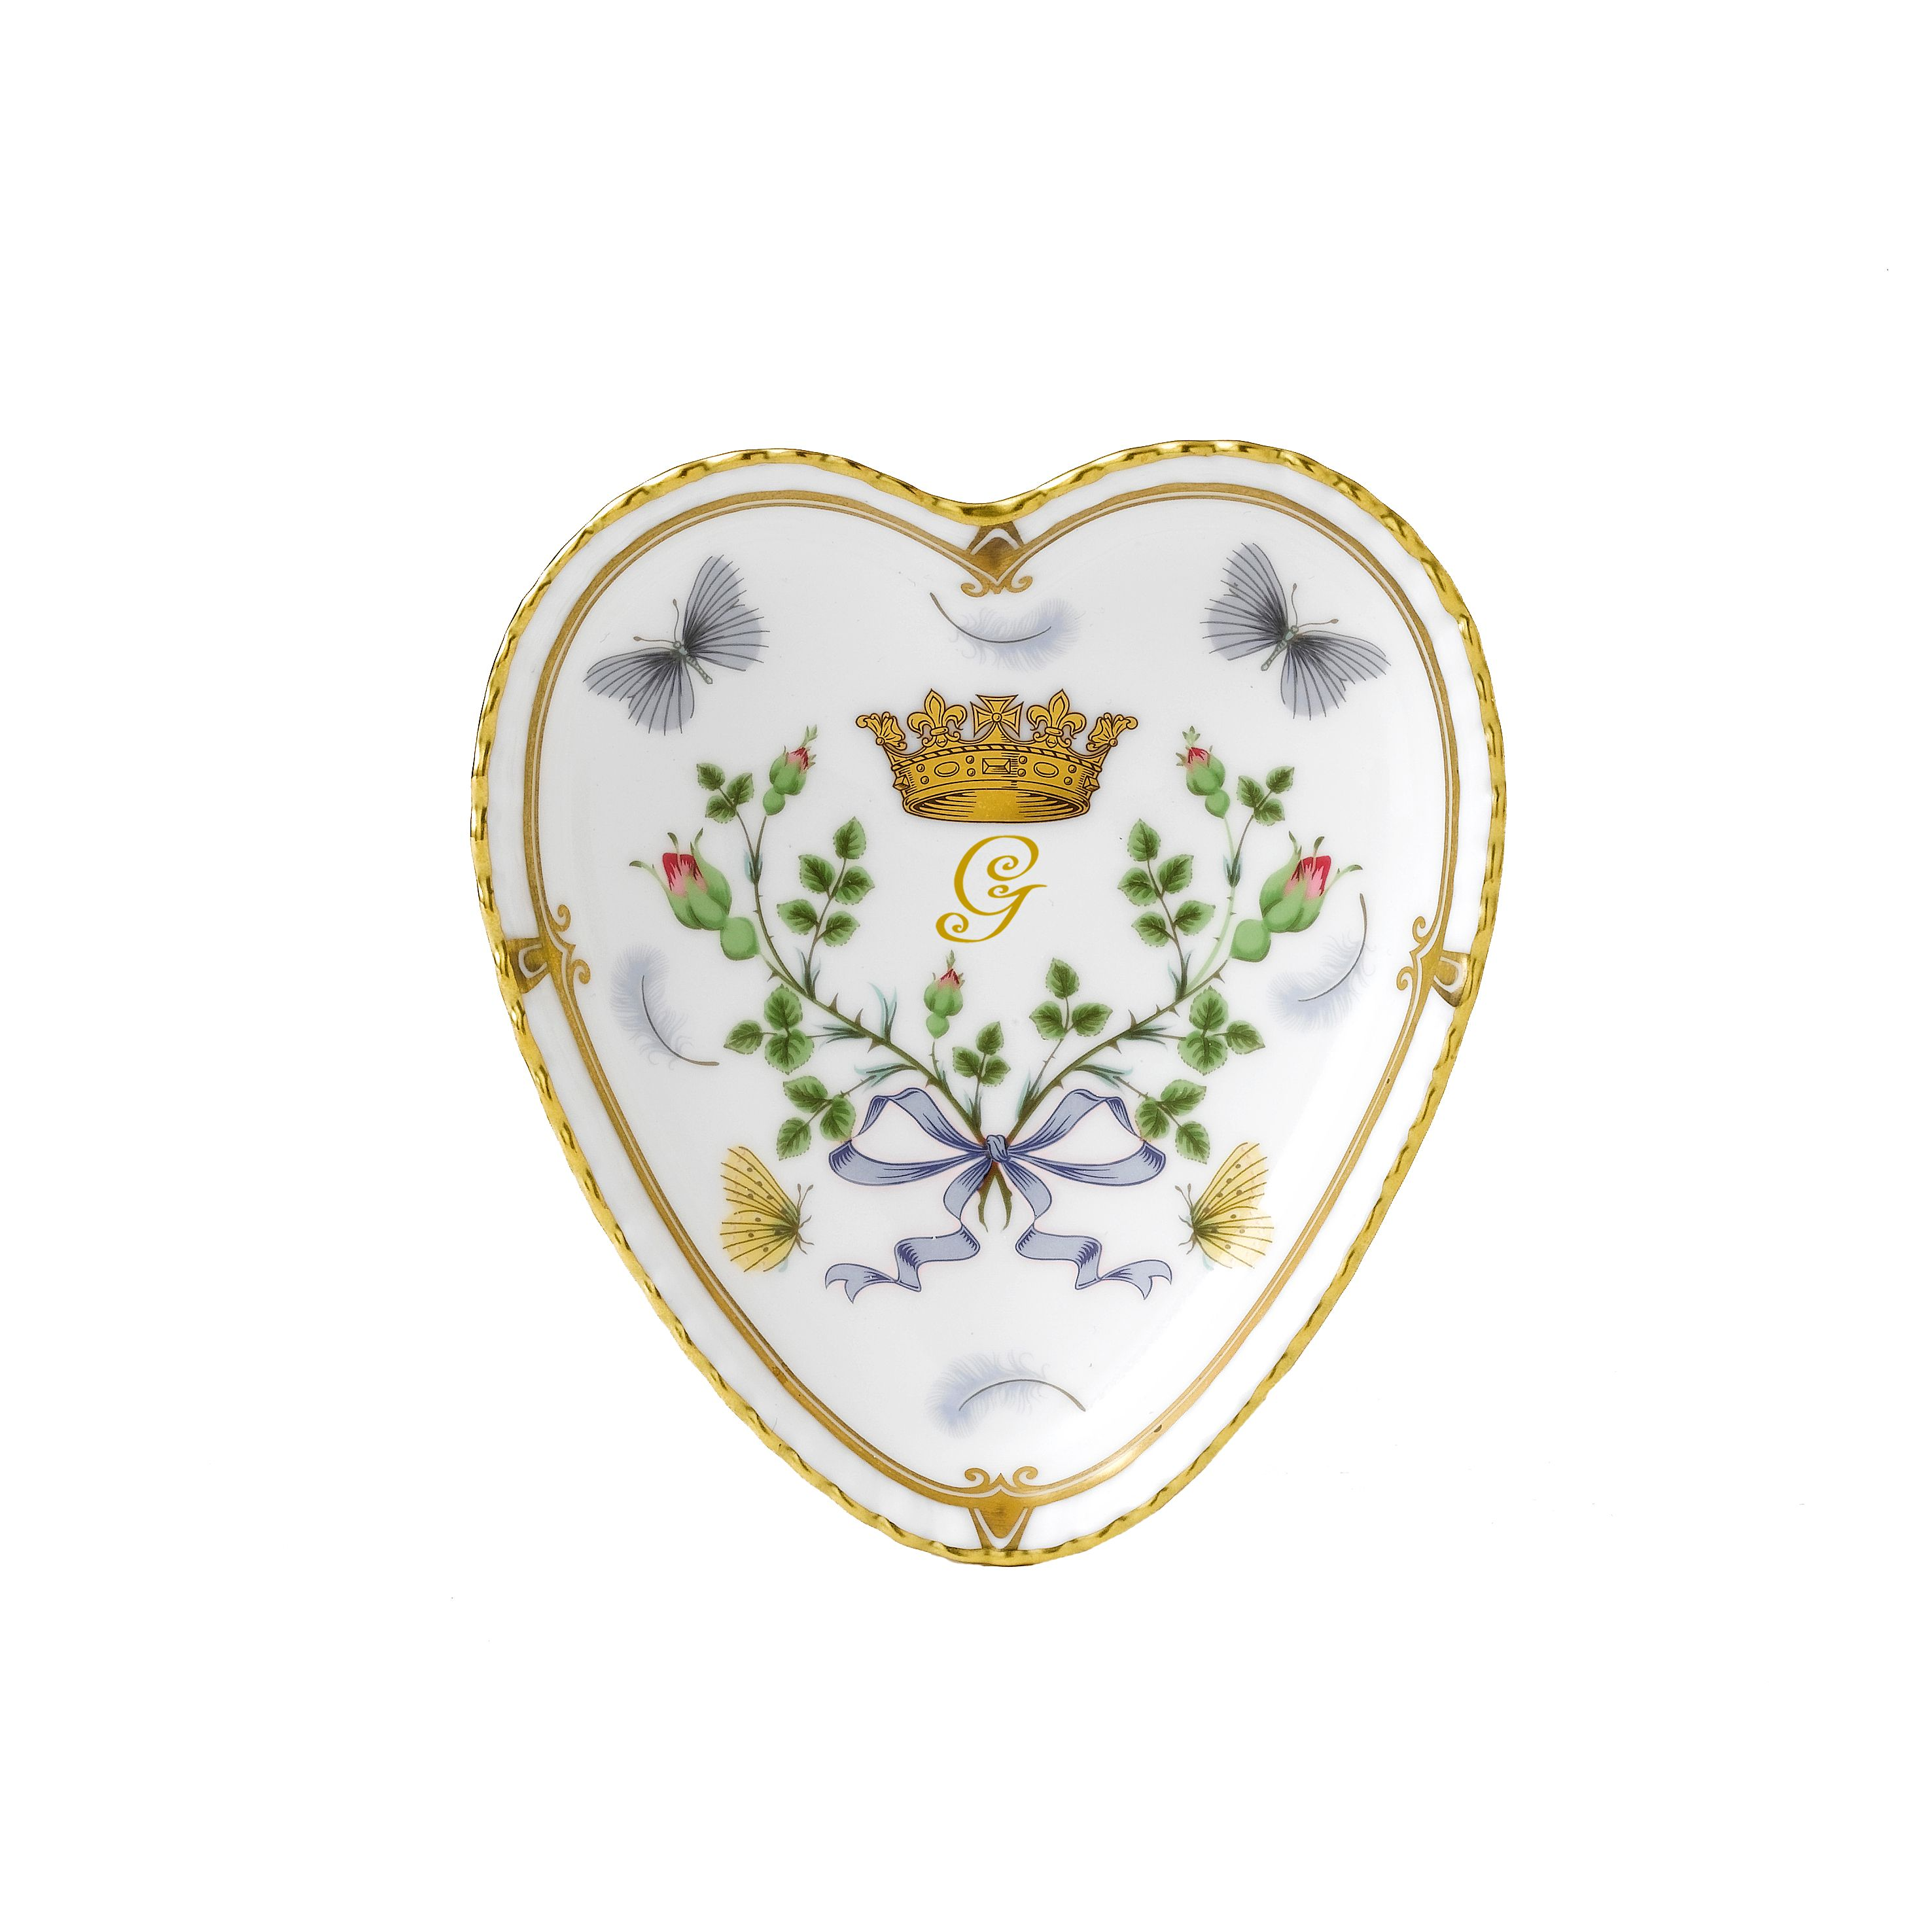 Image of Royal Crown Derby Heart tray